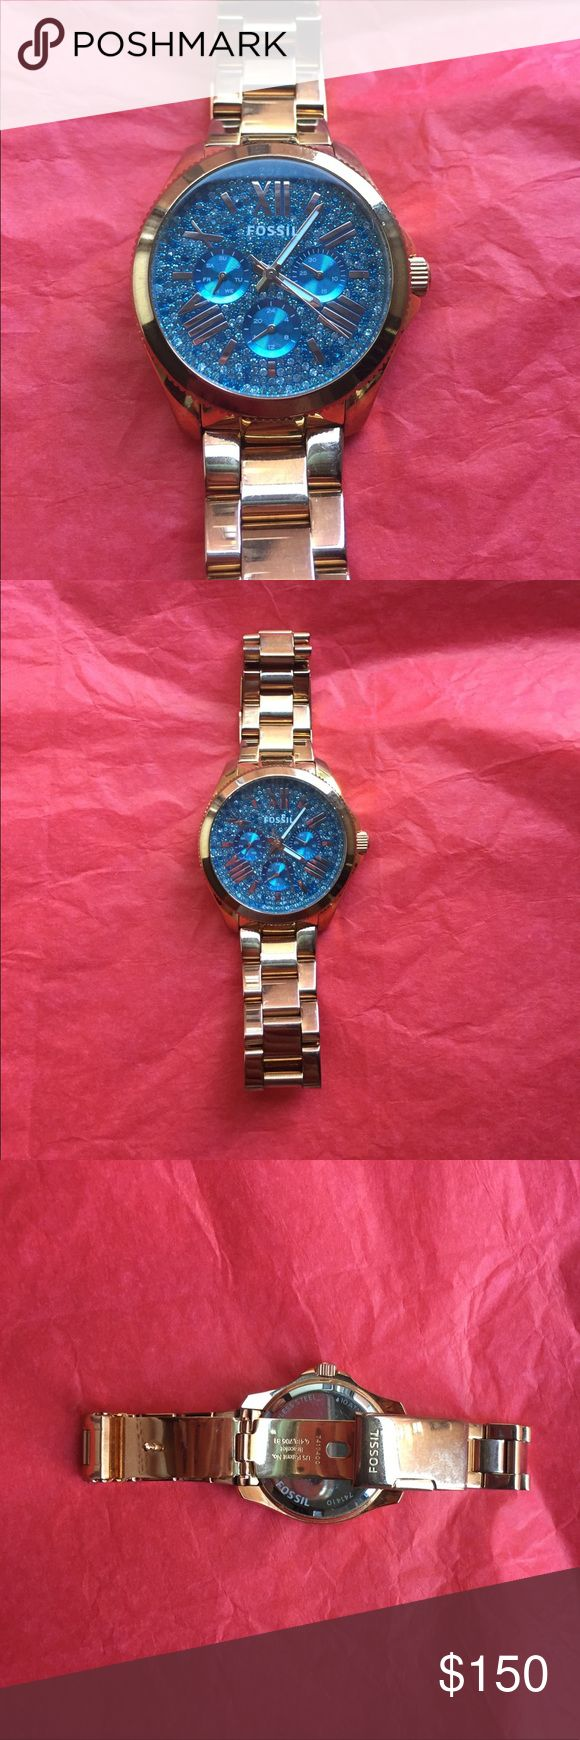 Blue💎 diamond studded Fossil watch 💎 Gorgeous Blue diamond studded Fossil watch! Selling it only because I just bought a new one. It is beautiful! Has the date, weekday, and military time! A few scratches can see in pics as it has been well loved! An amazing watch - make an offer! I always get compliments on it💋💎💎💎 Fossil Accessories Watches